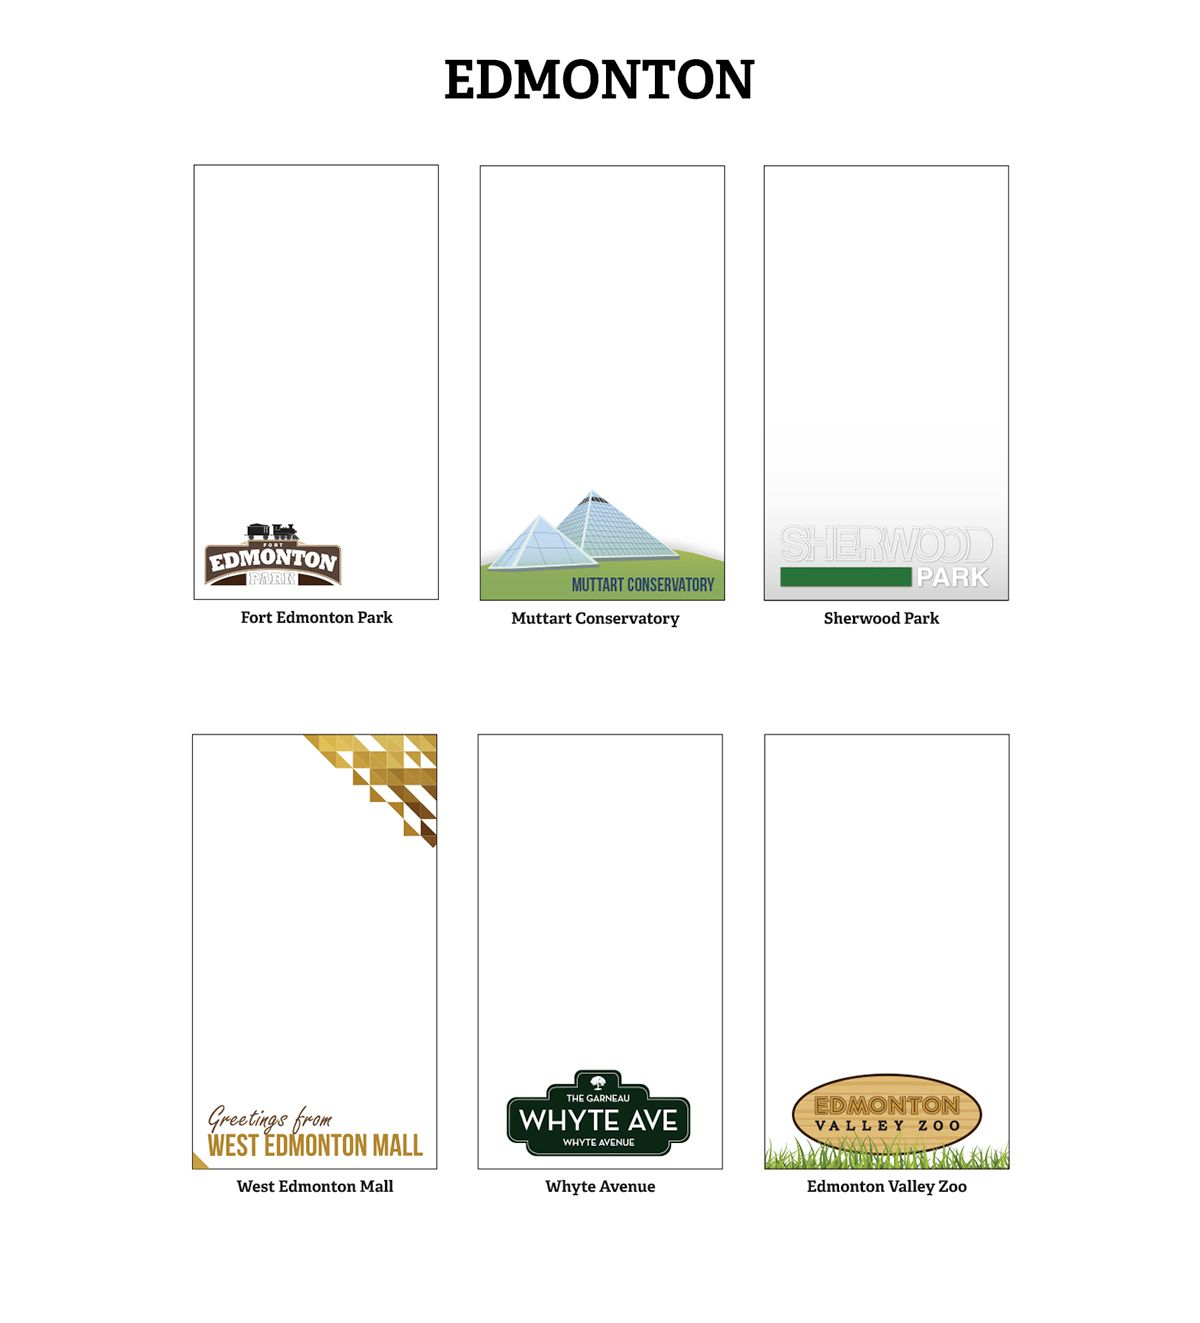 Snapchat Geofilters Canada On Behance In 2020 Snapchat Geofilters Snapchat Geofilter Design Geofilter